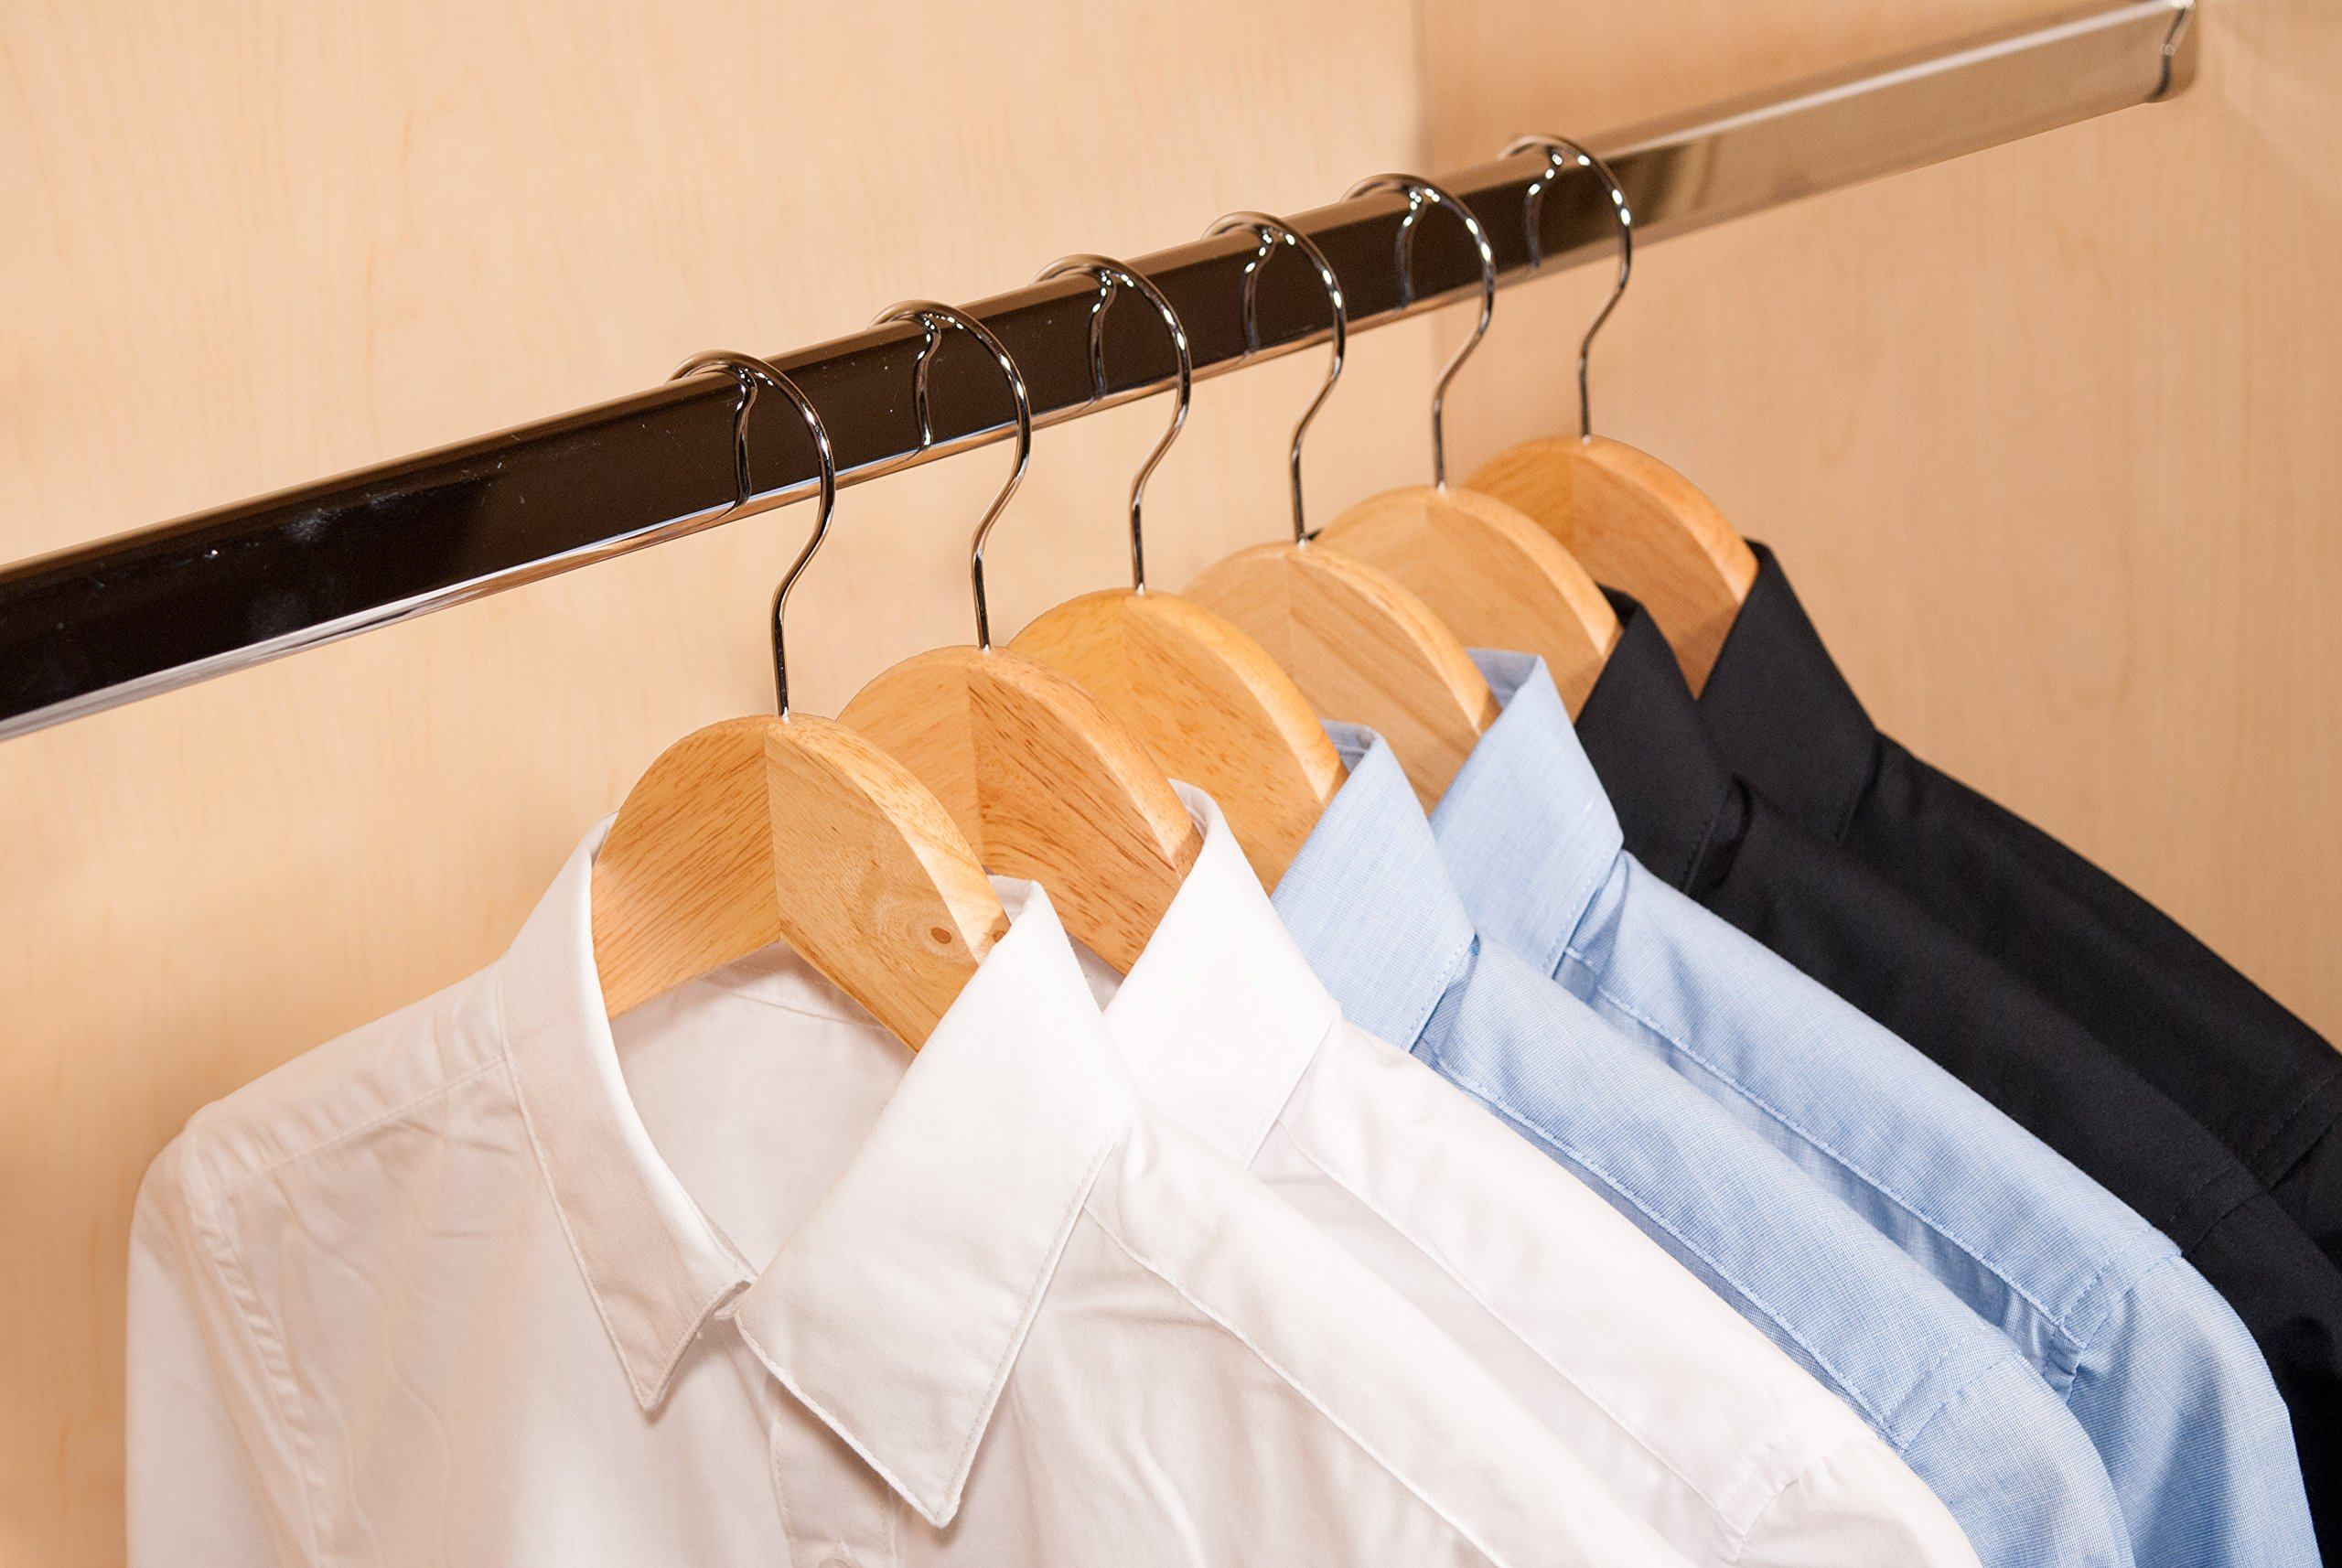 Topline Classic Wood Suit Hangers - 20 Pack (Natural Finish) by Topline (Image #8)